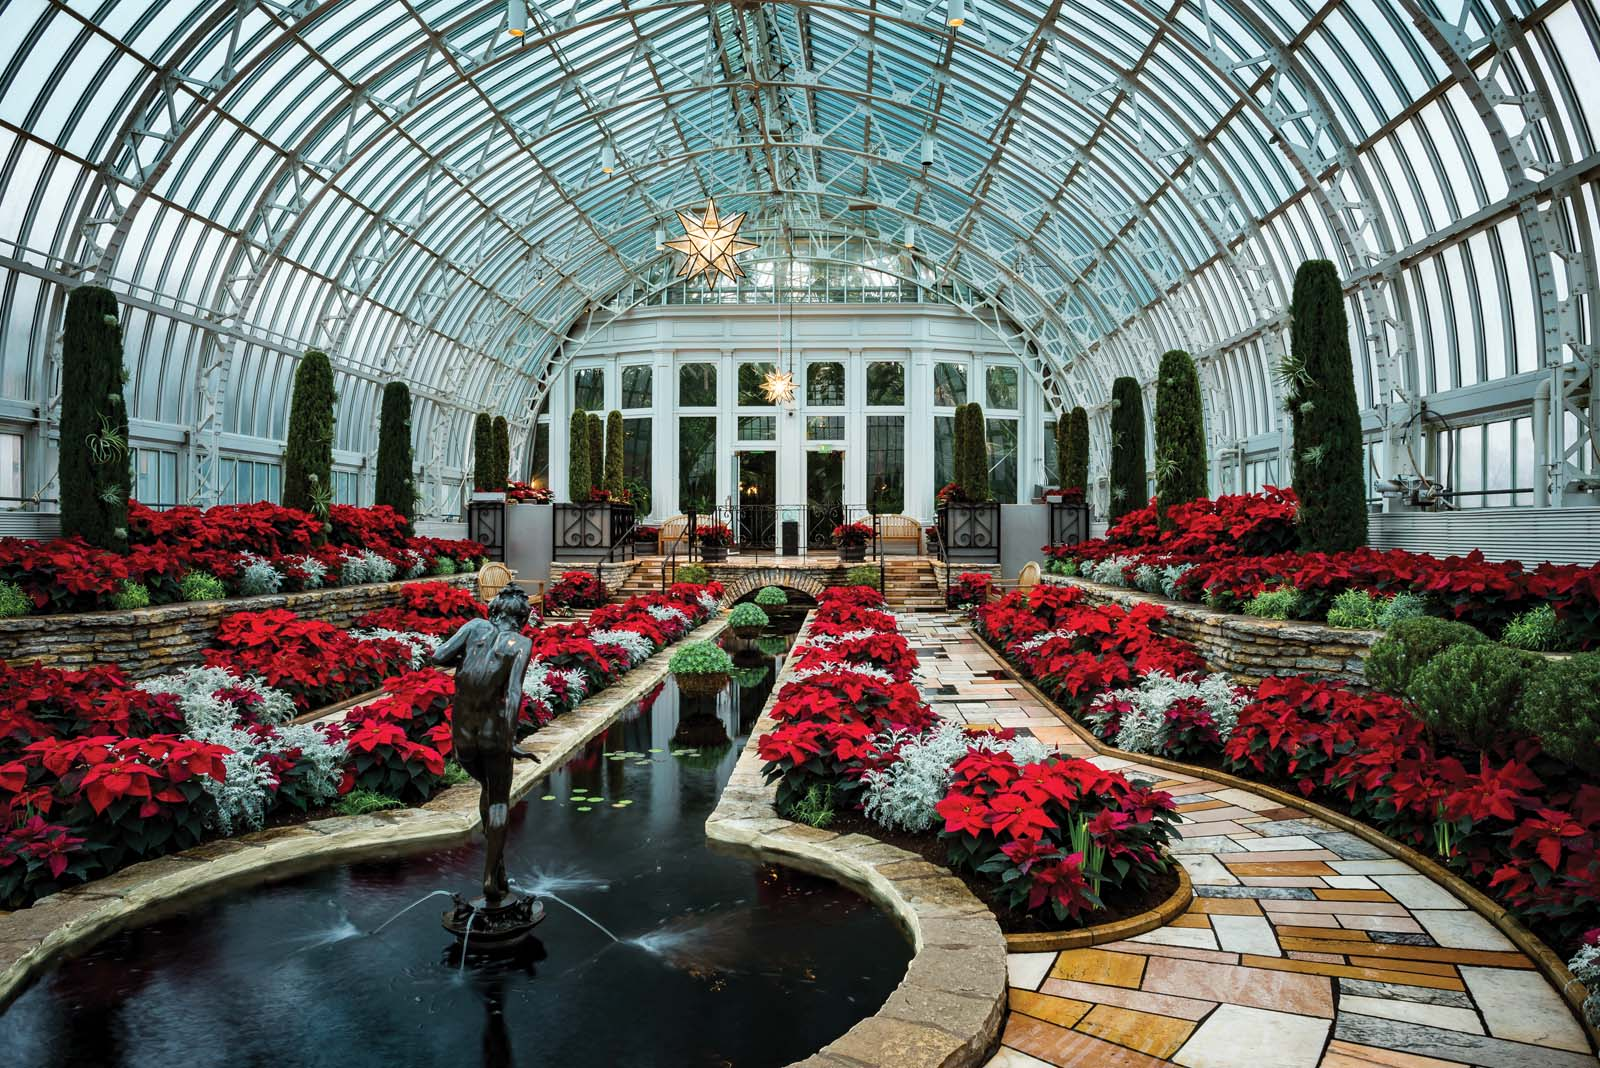 The Holiday Flower Show at the Marjorie McNeely Conservatory.